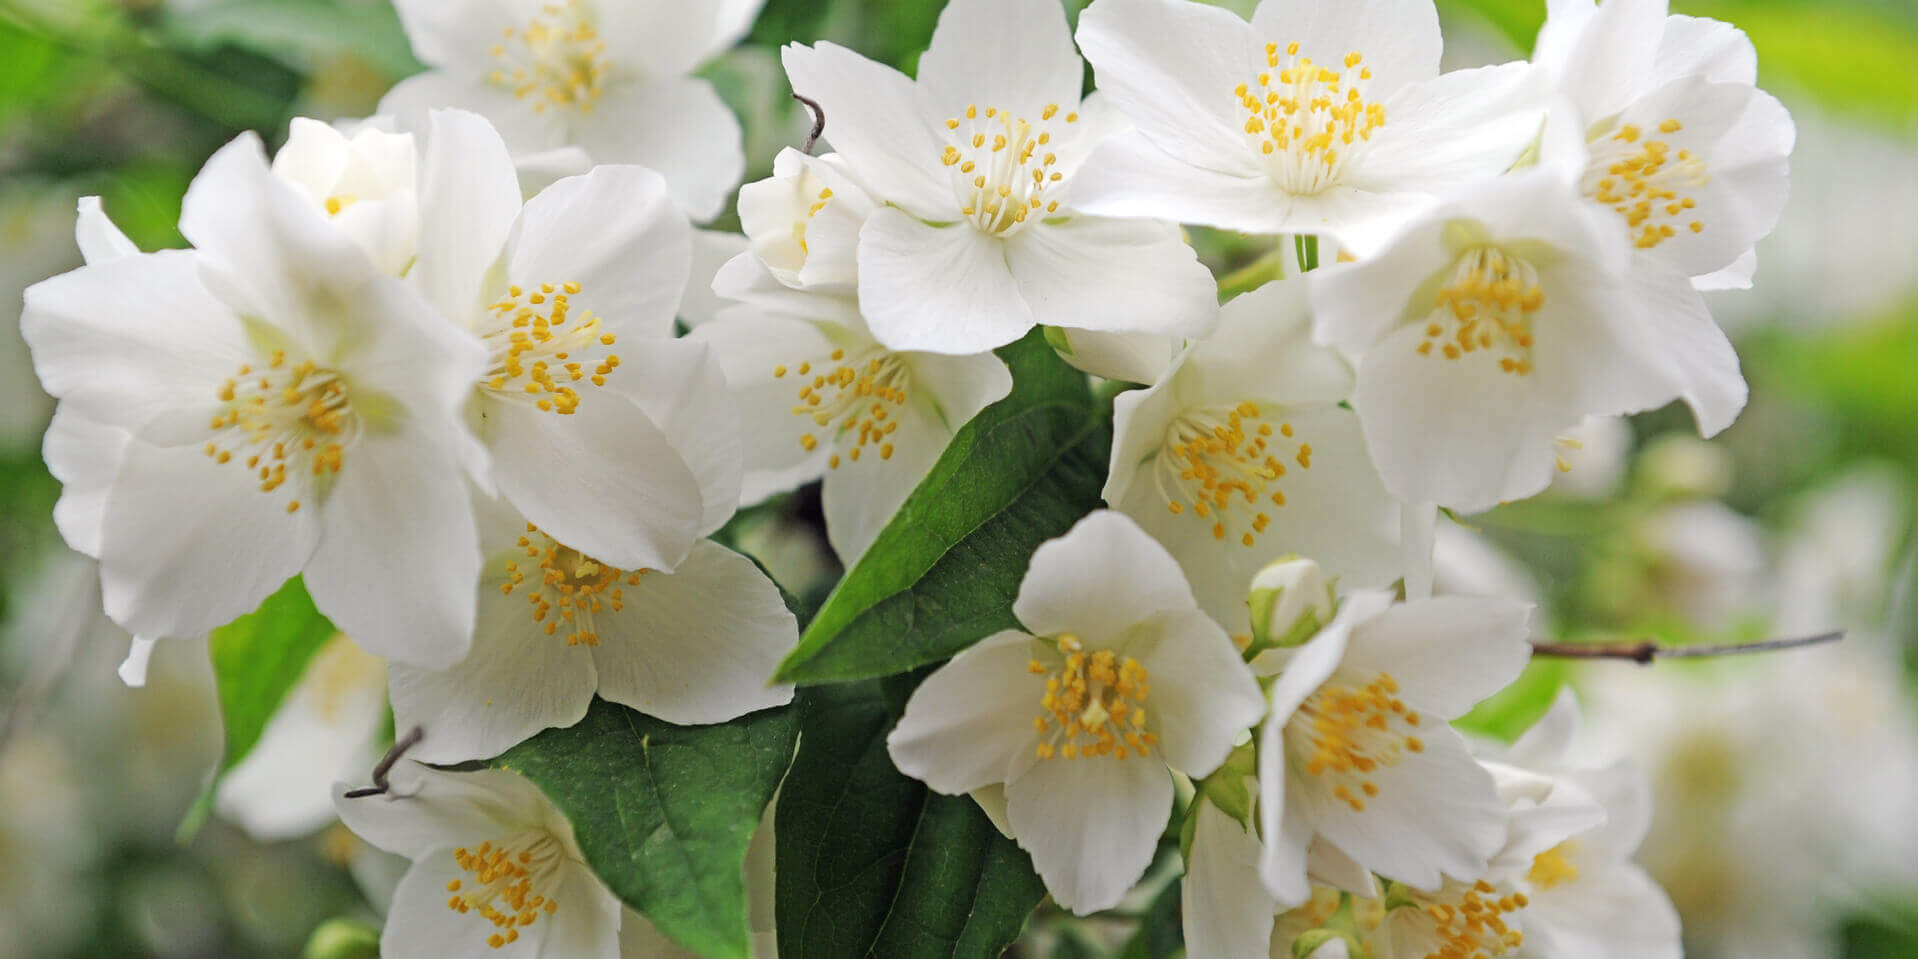 neroli flower used to produce natural essential oil